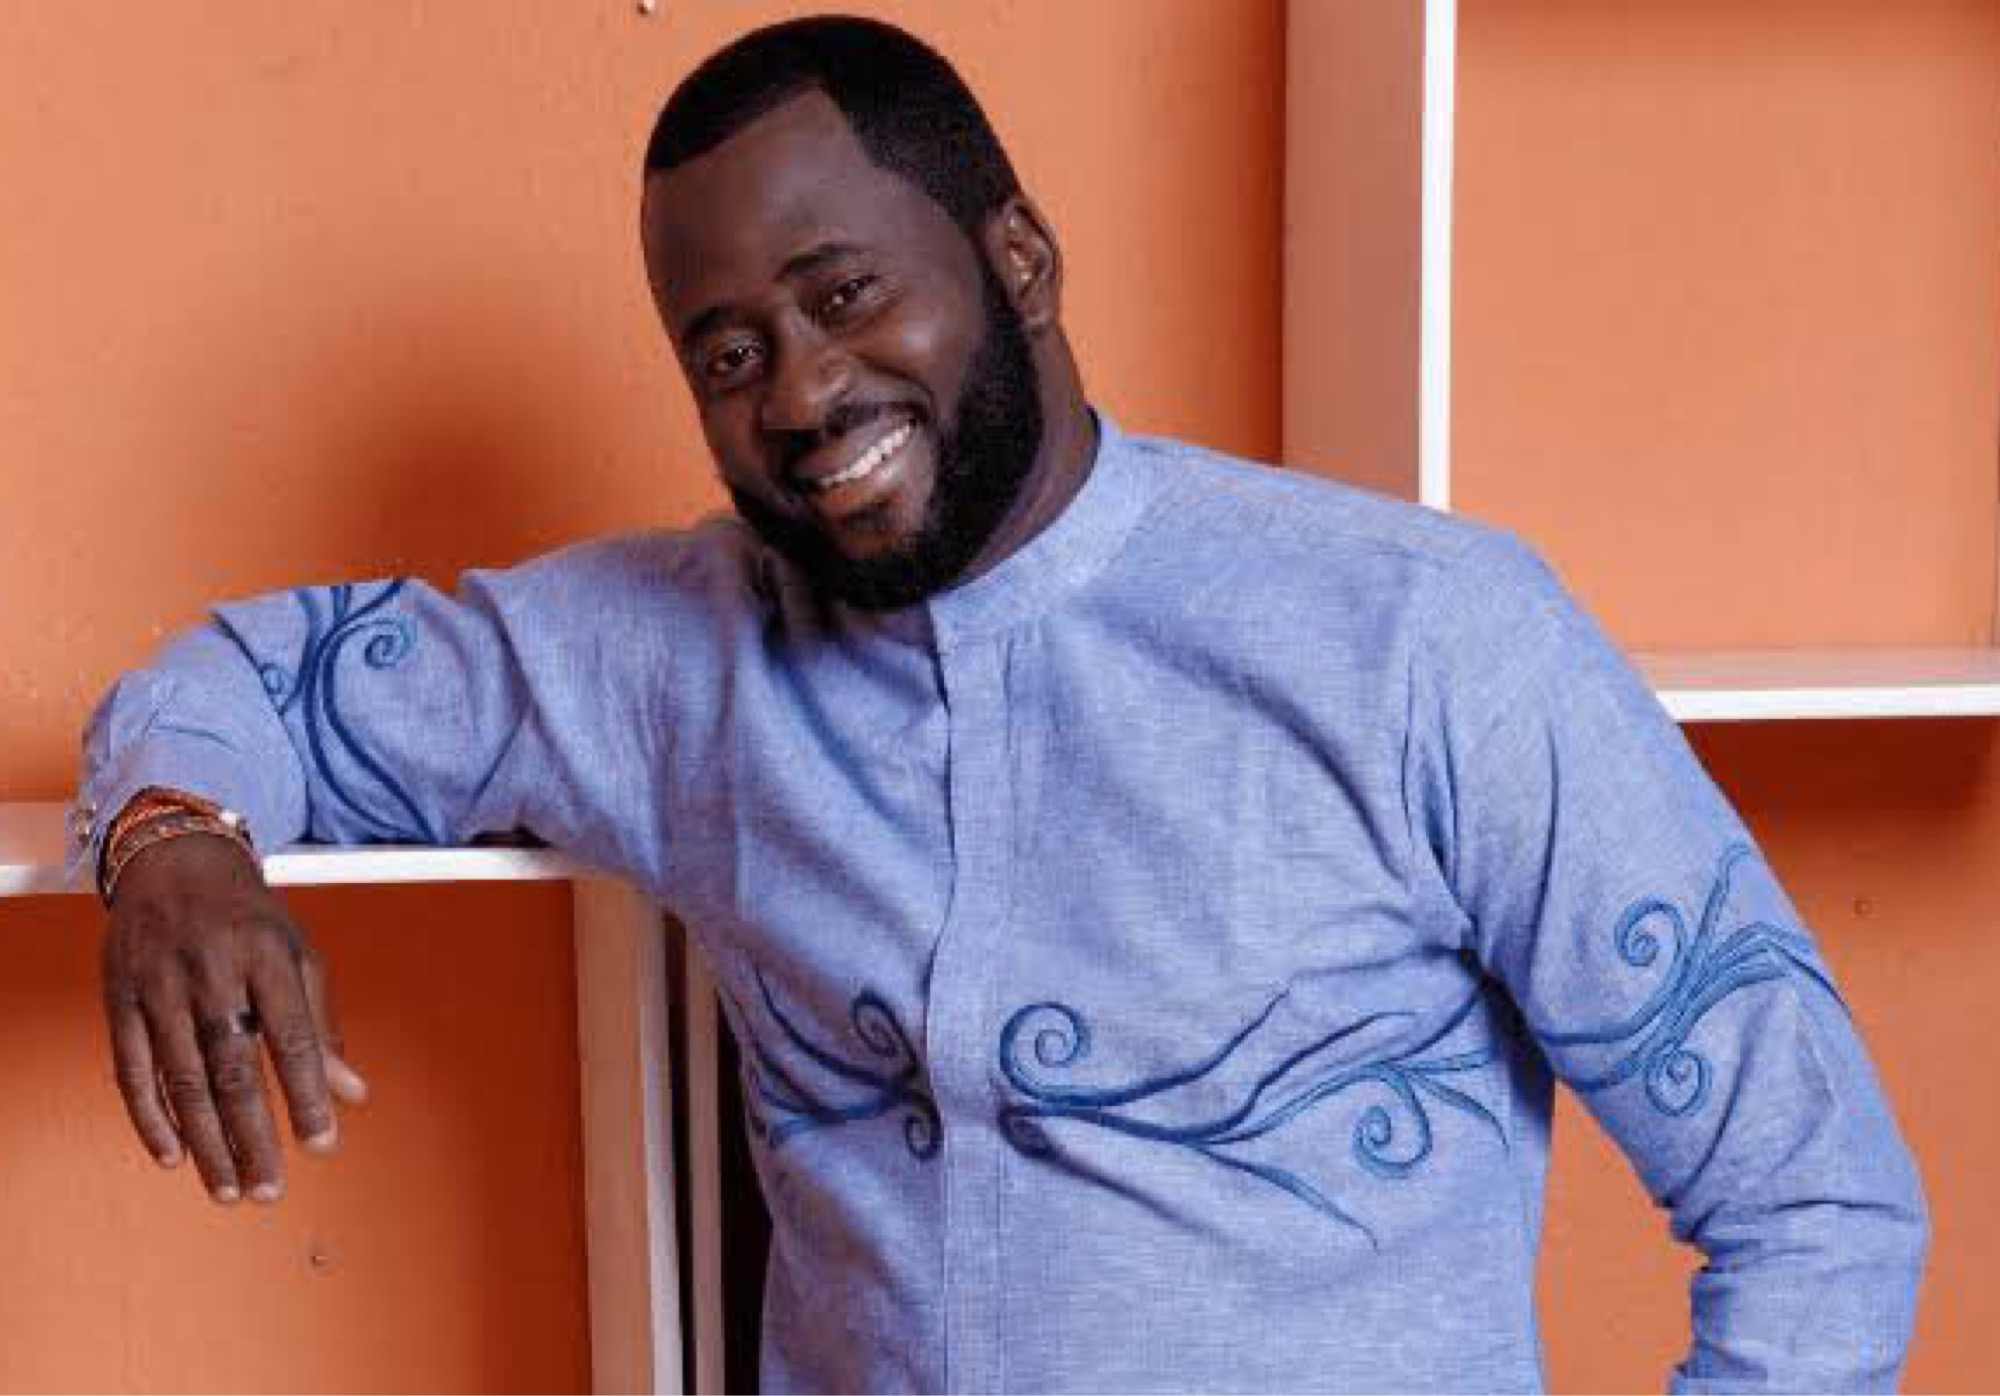 """If You Are Tired, Come And Enter Government"" – Desmond Elliot Tells Youths, Who Are Protesting (Video)"